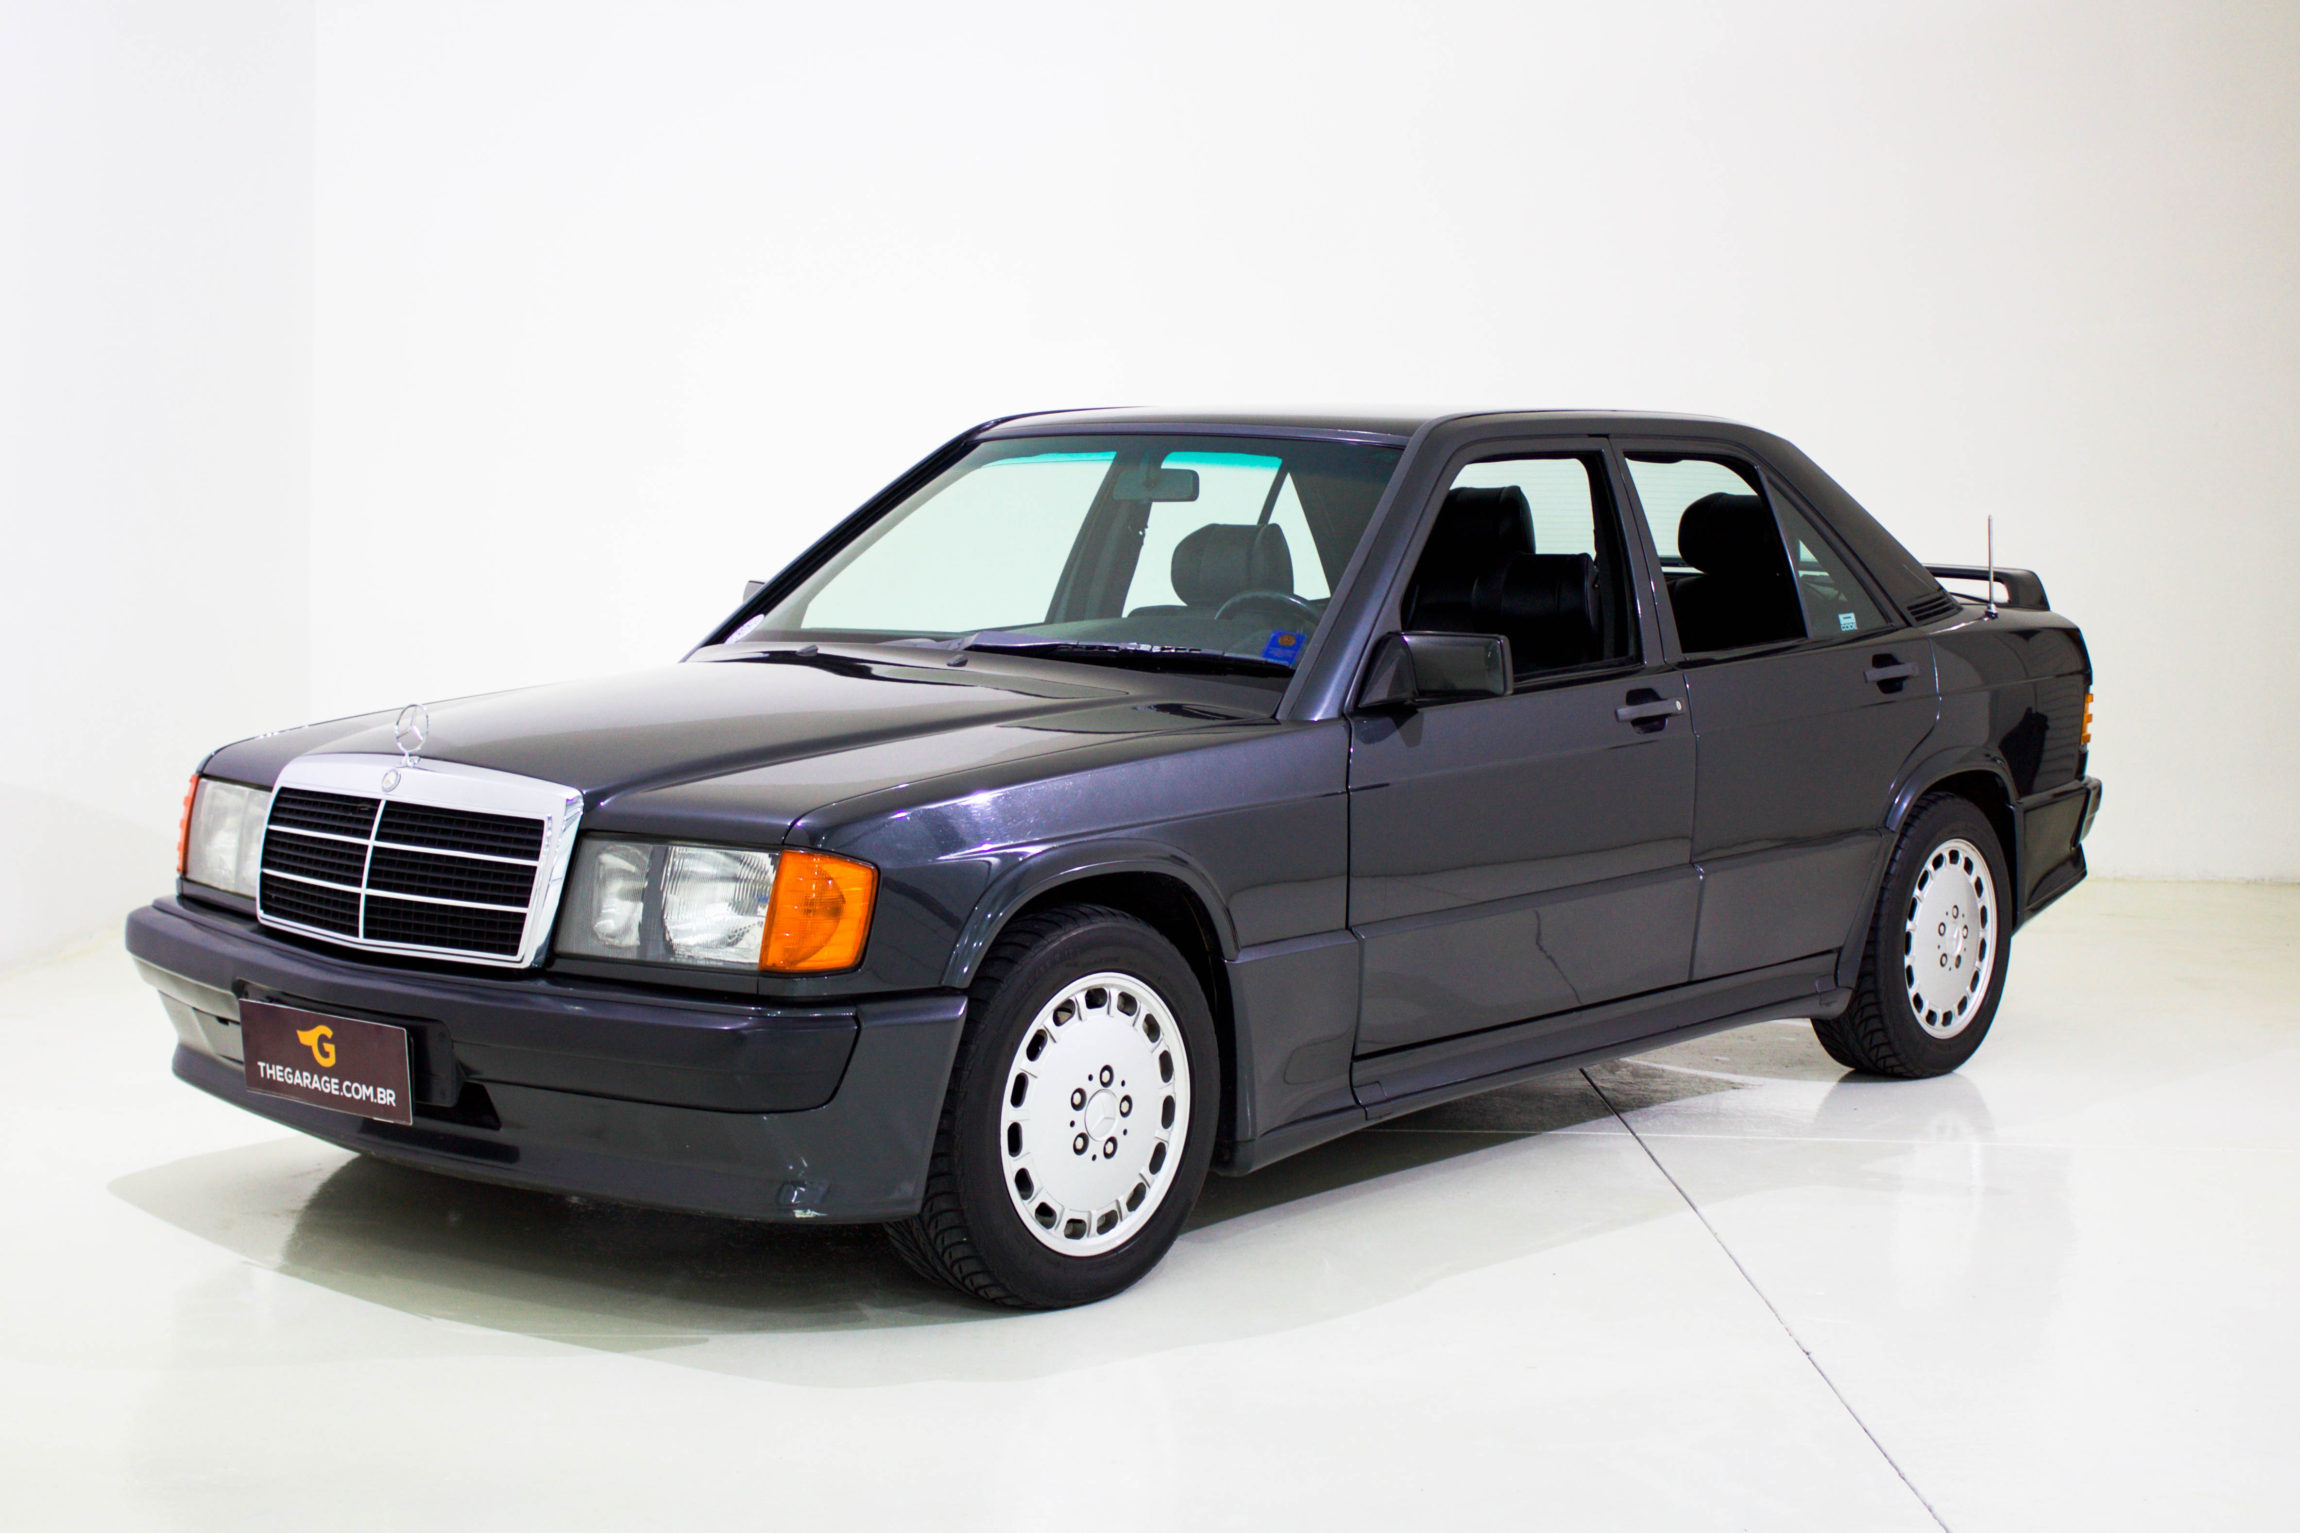 1985 Mercedes Benz 190E 2.3-16 Cosworth